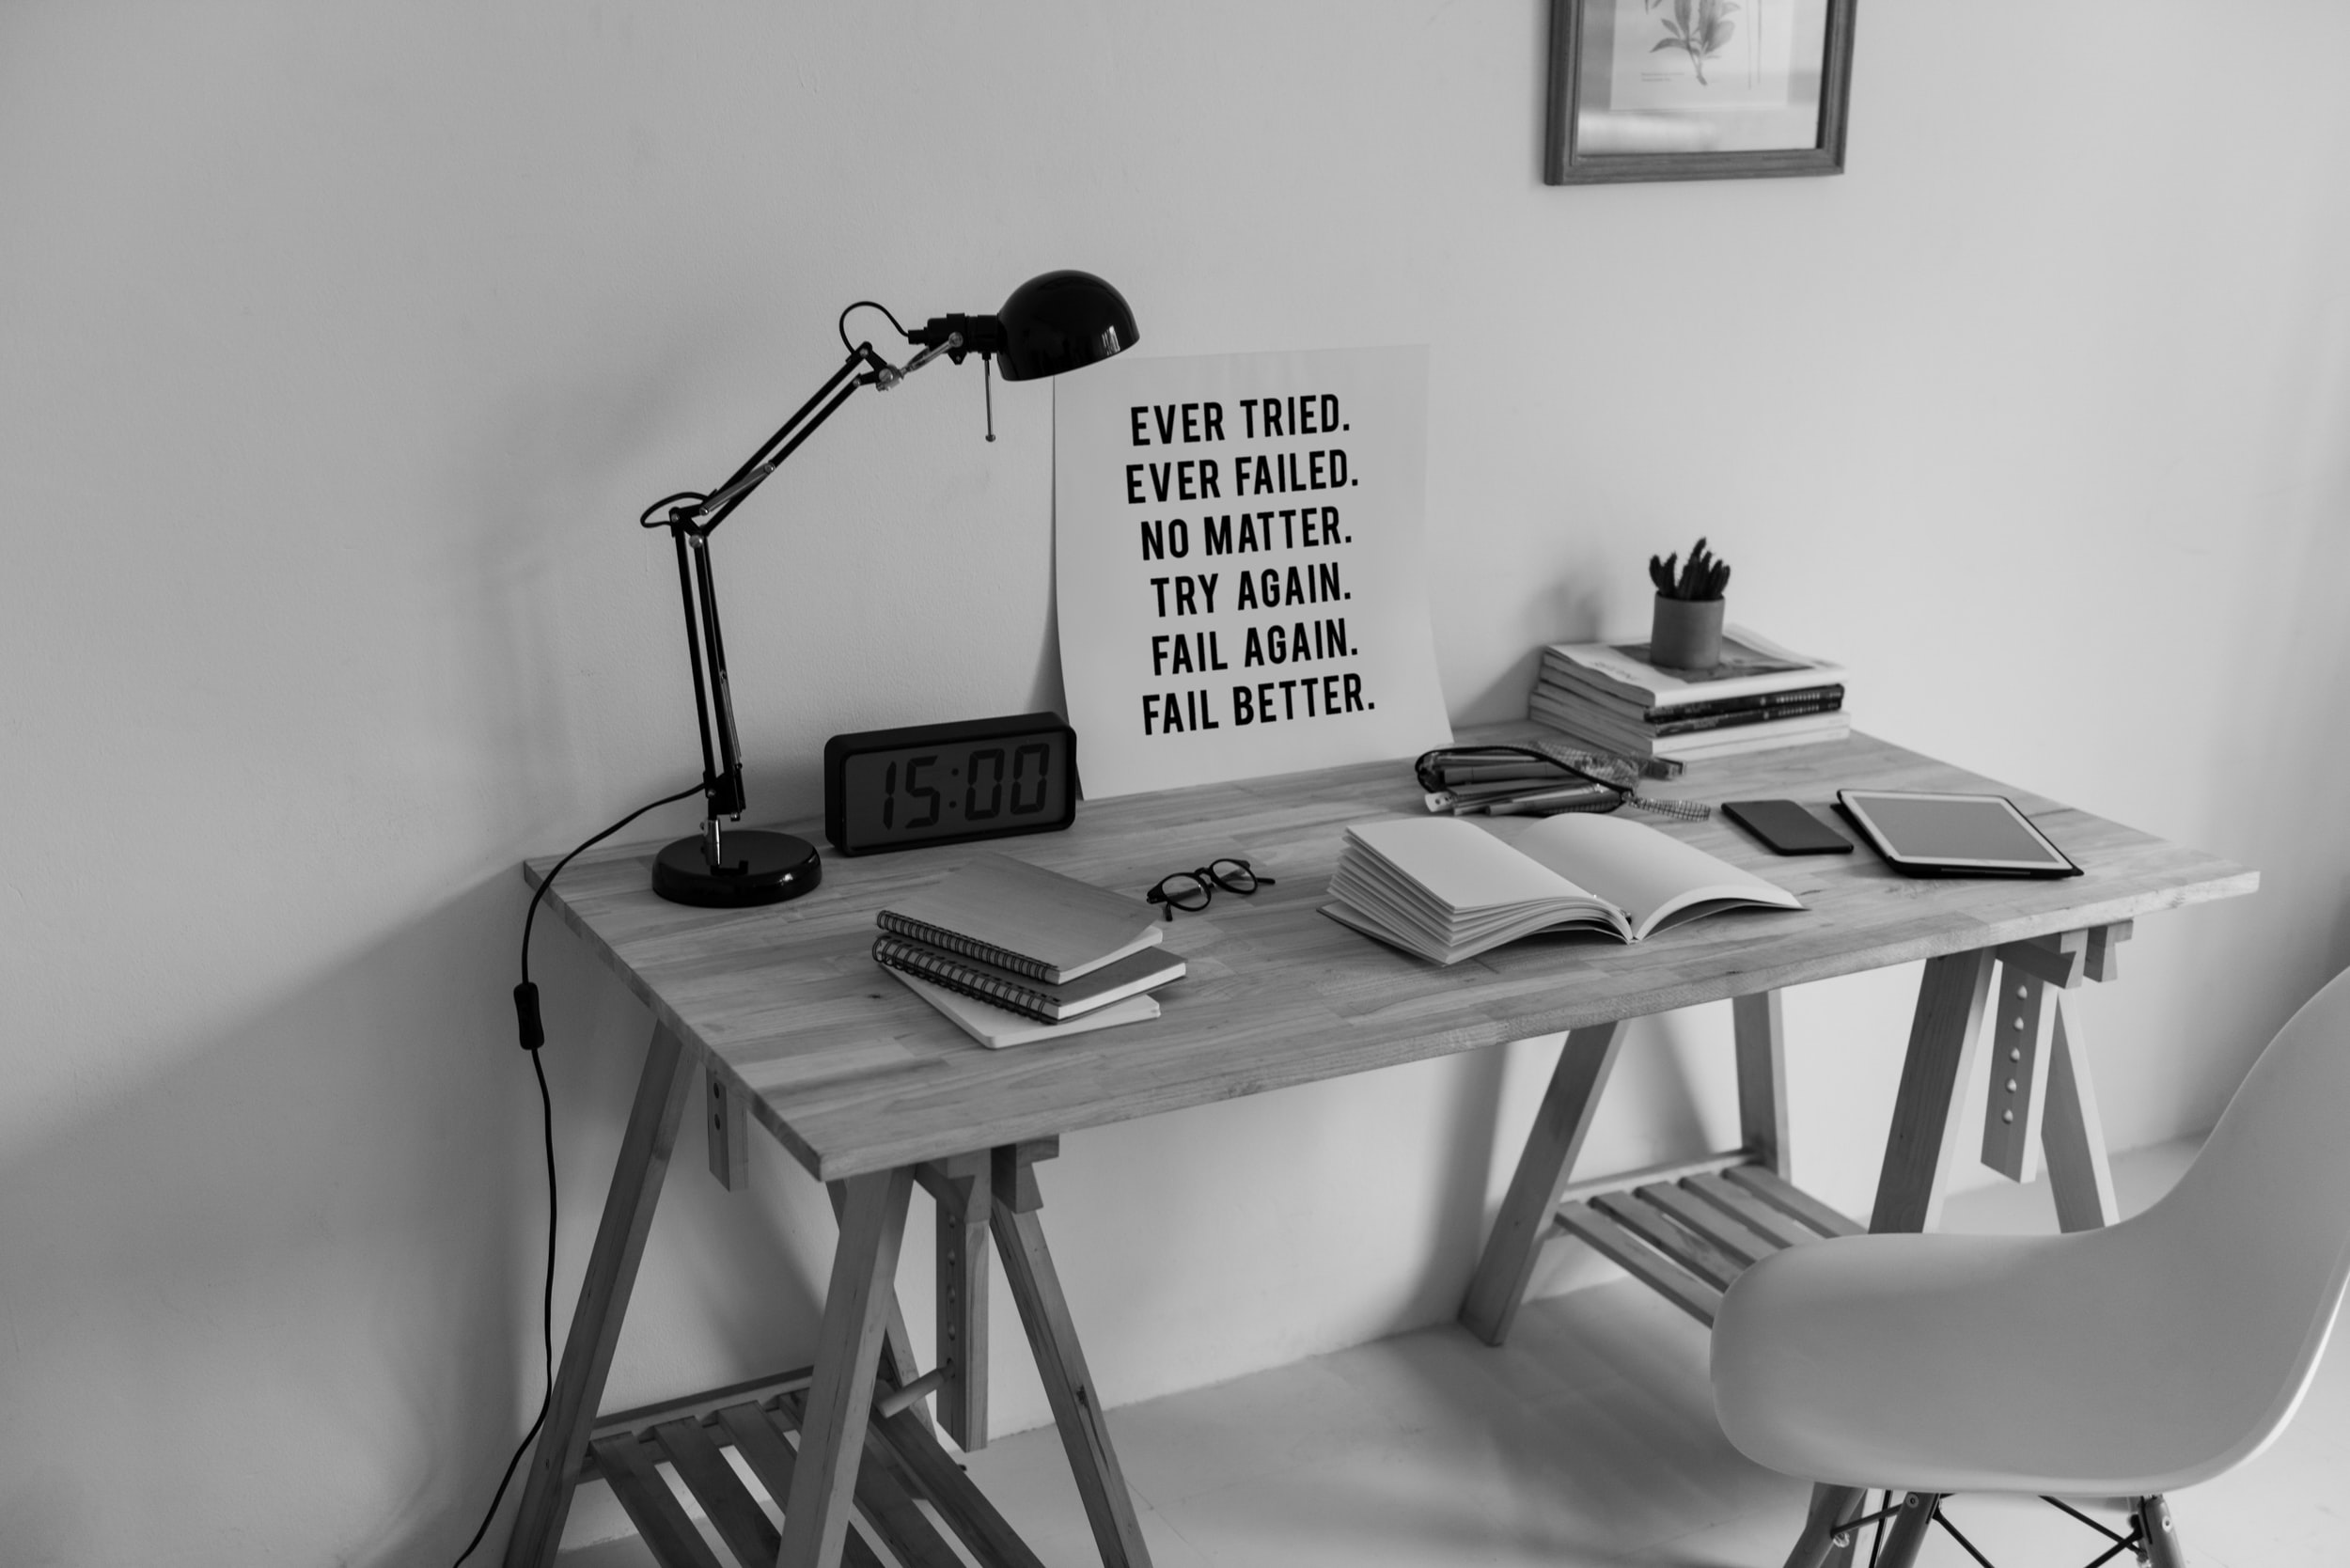 grayscale photography of clock at 15:00 on desk